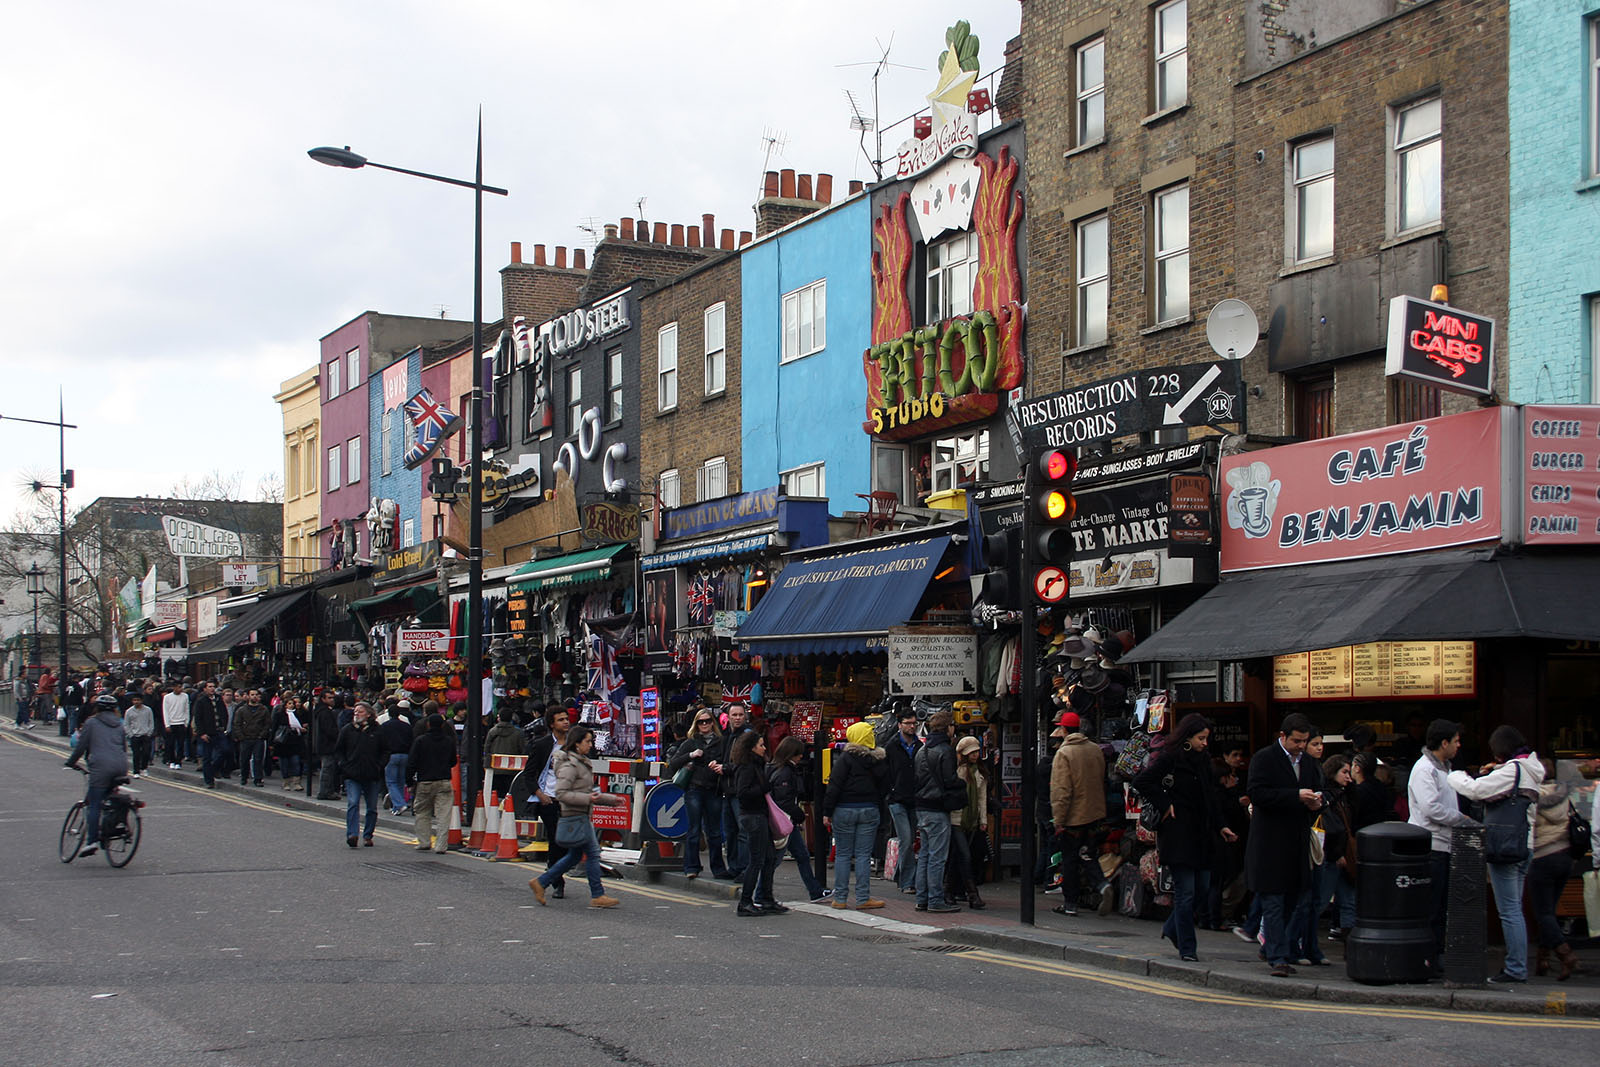 A famous bustling street in Camden's shopping centre.